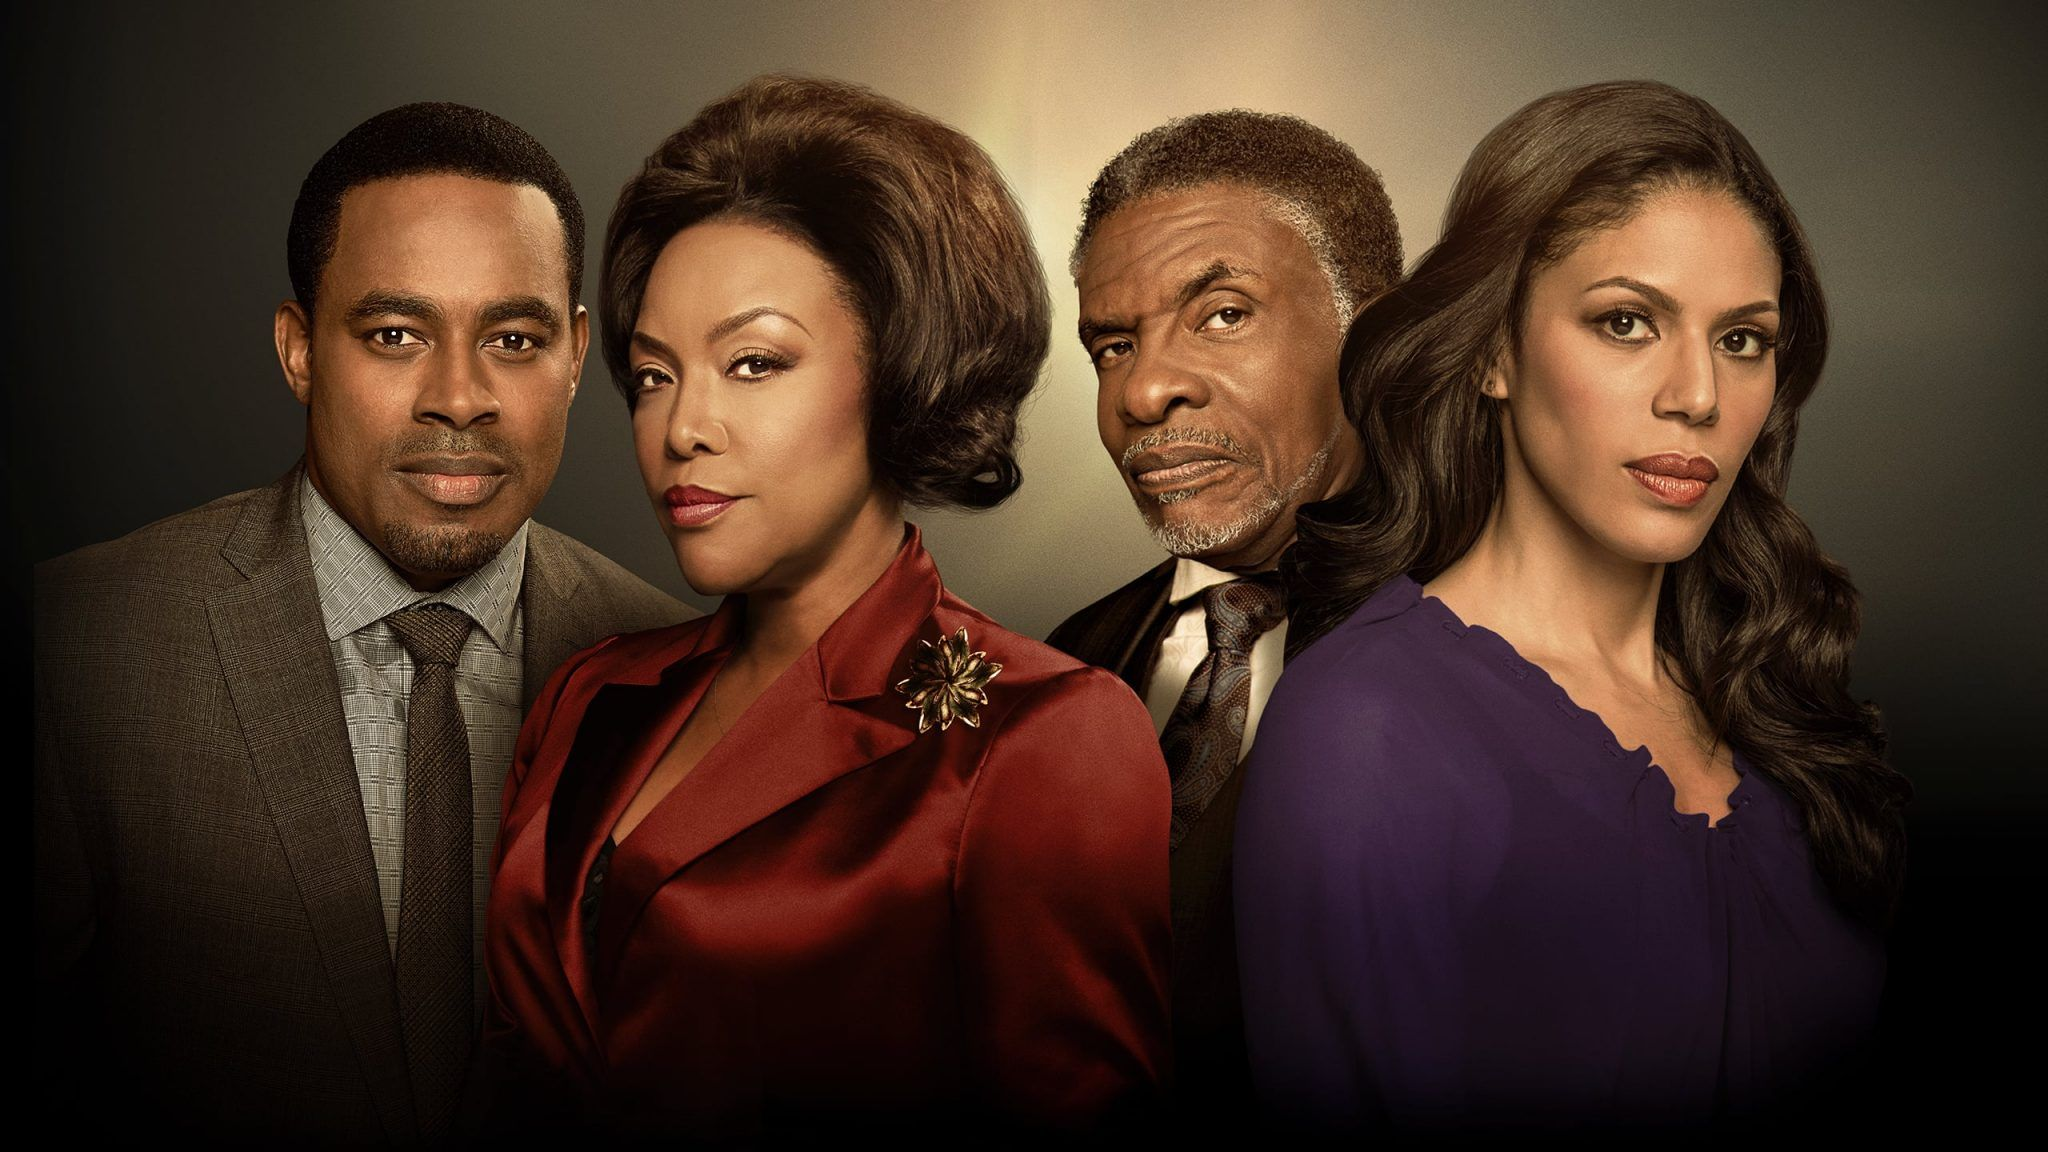 Greenleaf Season 4 3 2 1 Download Episodes For Free In Mkv Mp4 And Avi Which Are Available For Downloading From Our Trus In 2020 Lynn Whitfield Movie Black Tv Shows